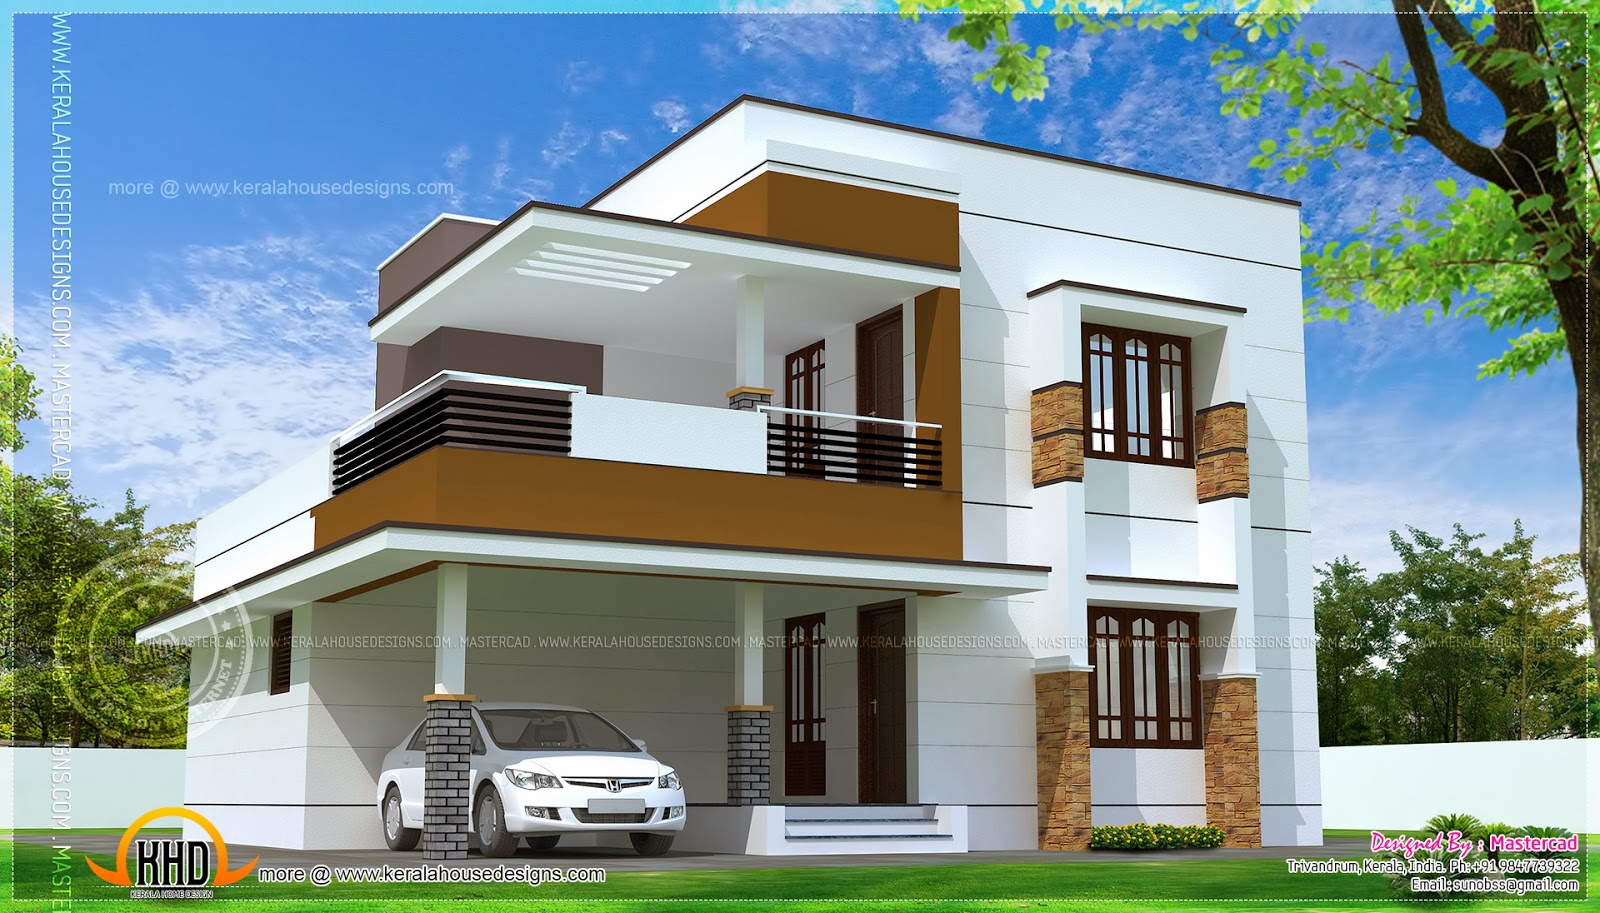 November 2013 kerala home design and floor plans Home design house plans